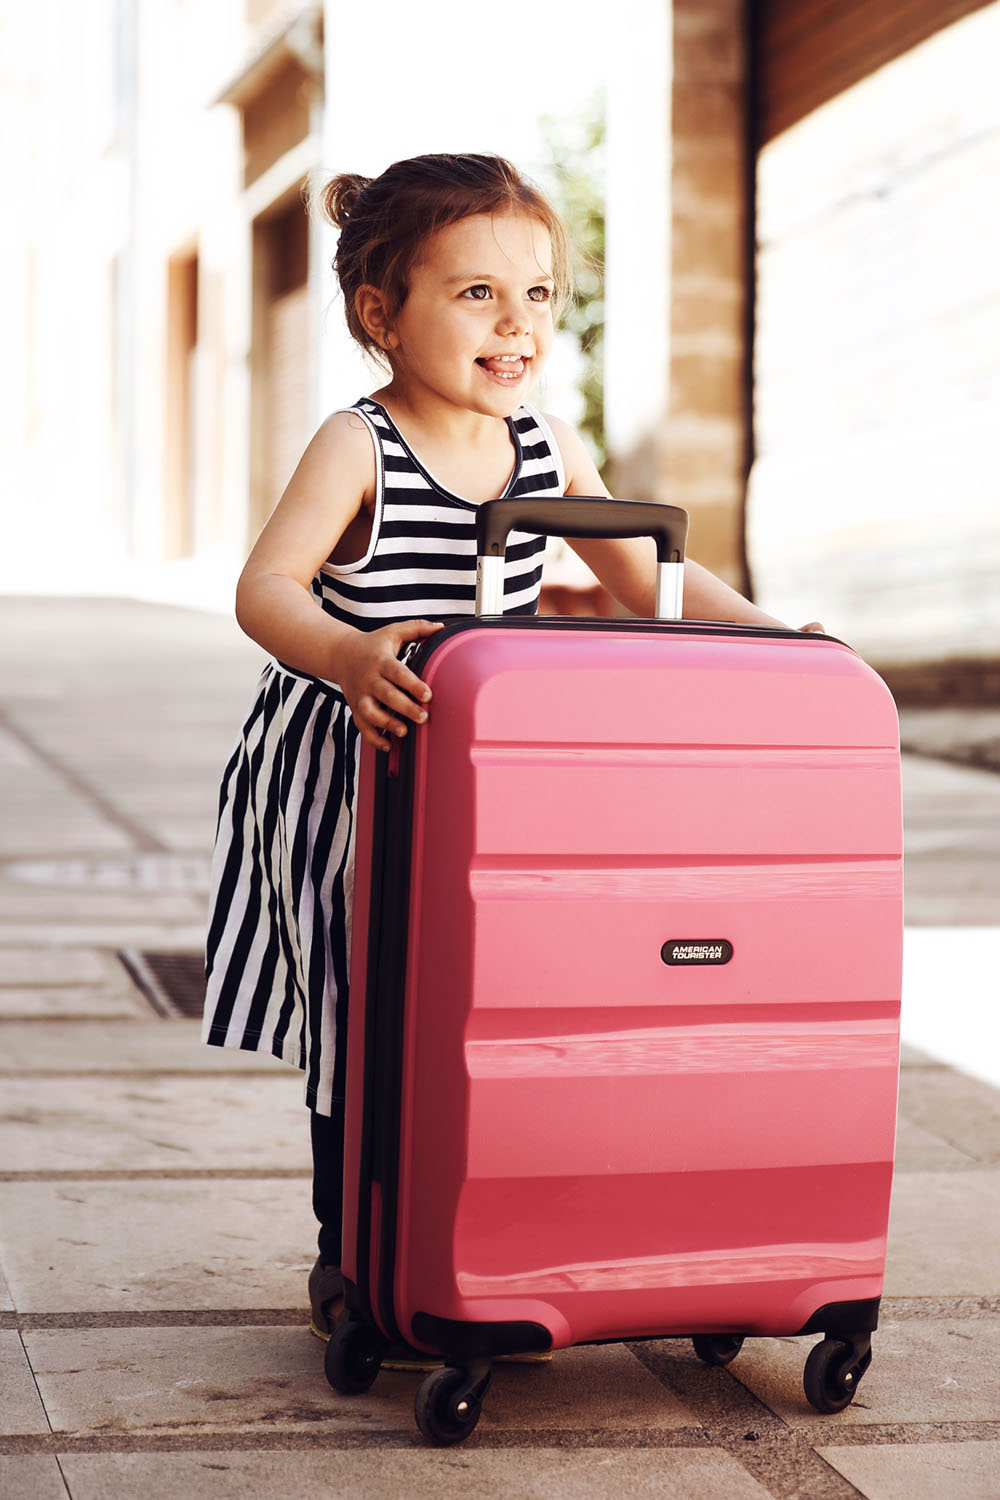 American_Tourister7